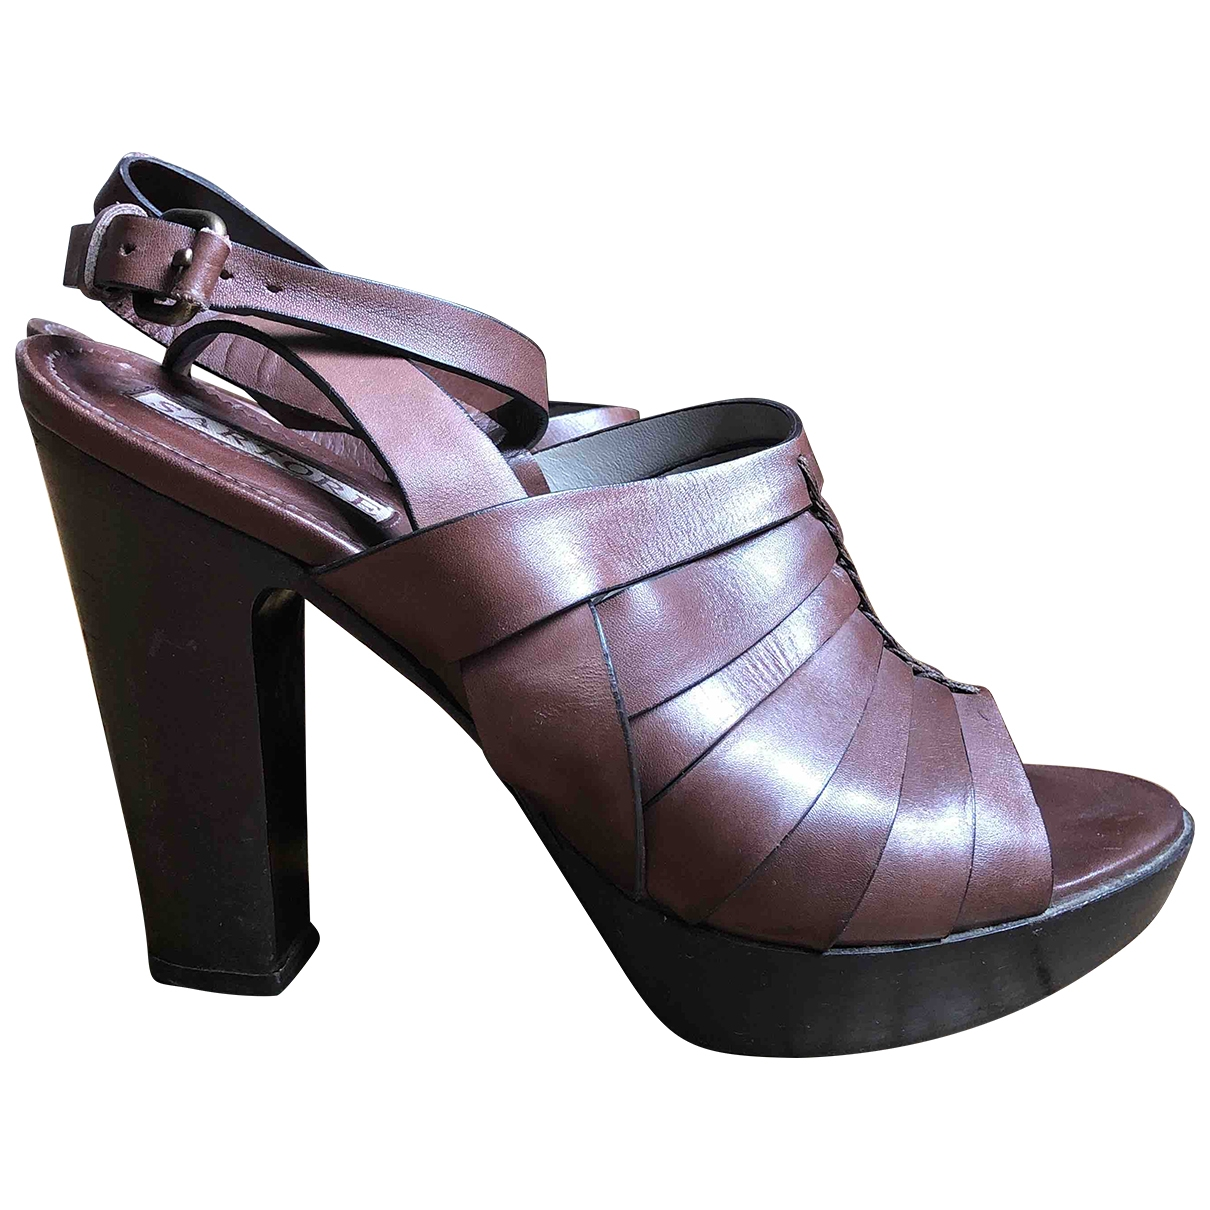 Sartore \N Brown Leather Sandals for Women 37.5 EU